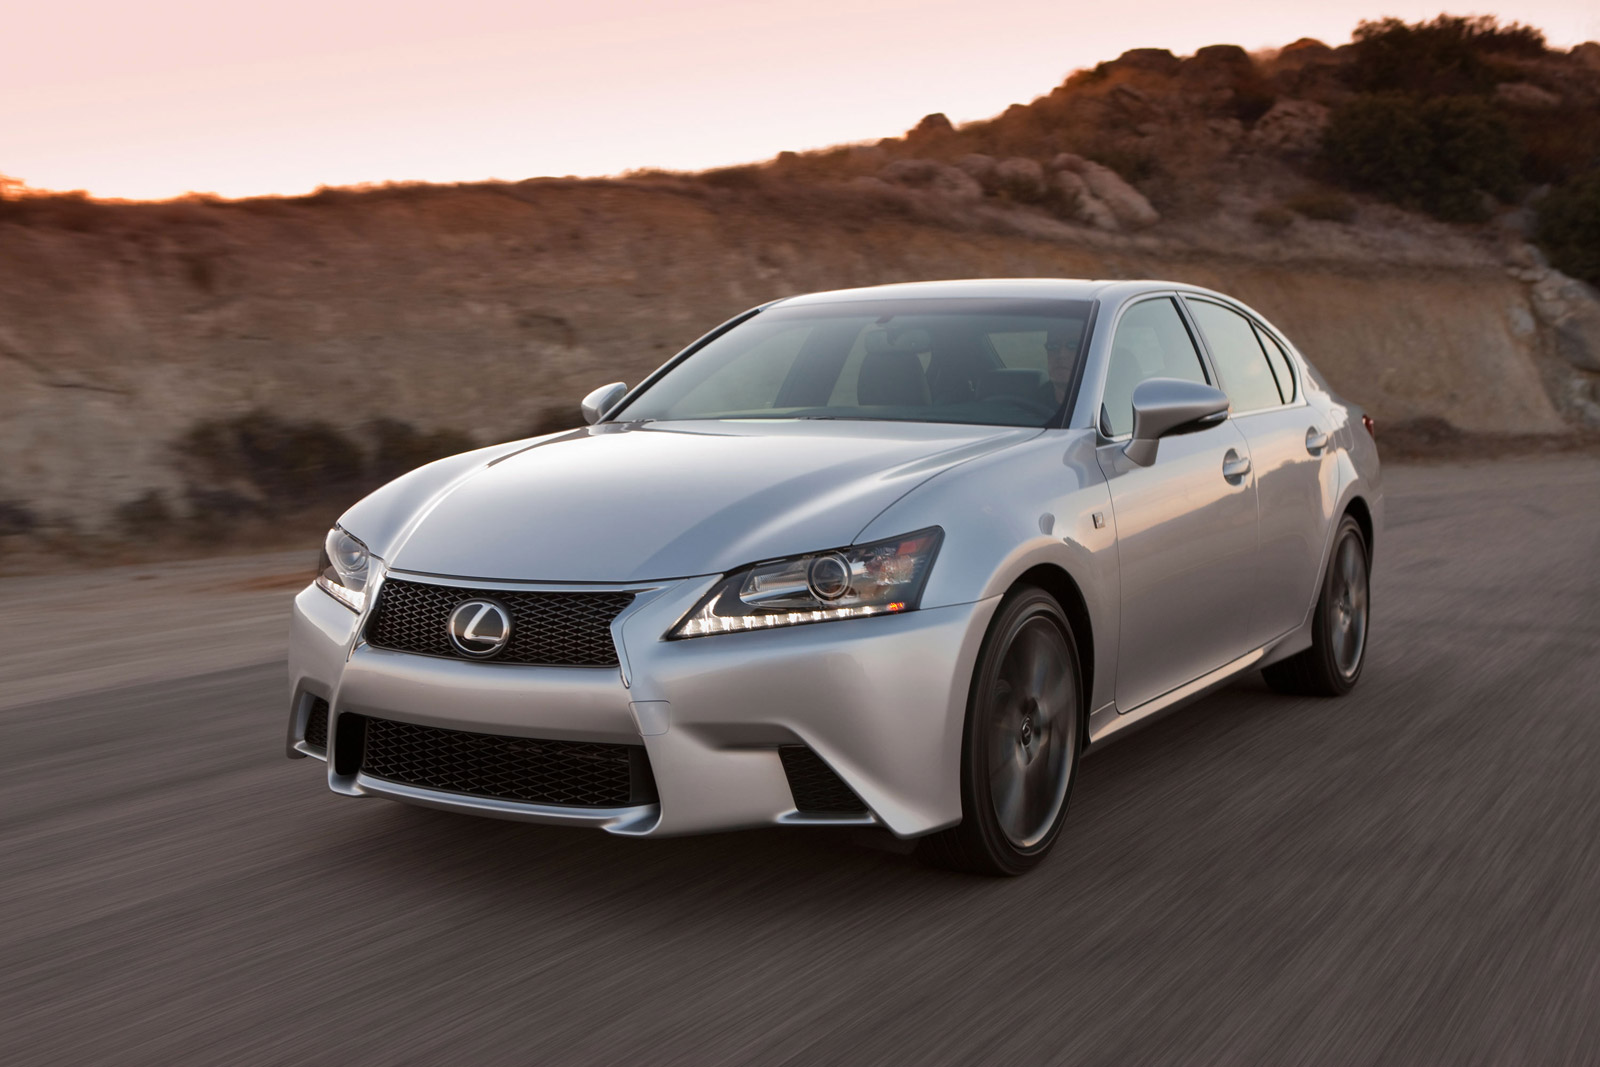 Mercedes Benz Fresno >> 2014 Lexus GS 350 Review, Ratings, Specs, Prices, and ...